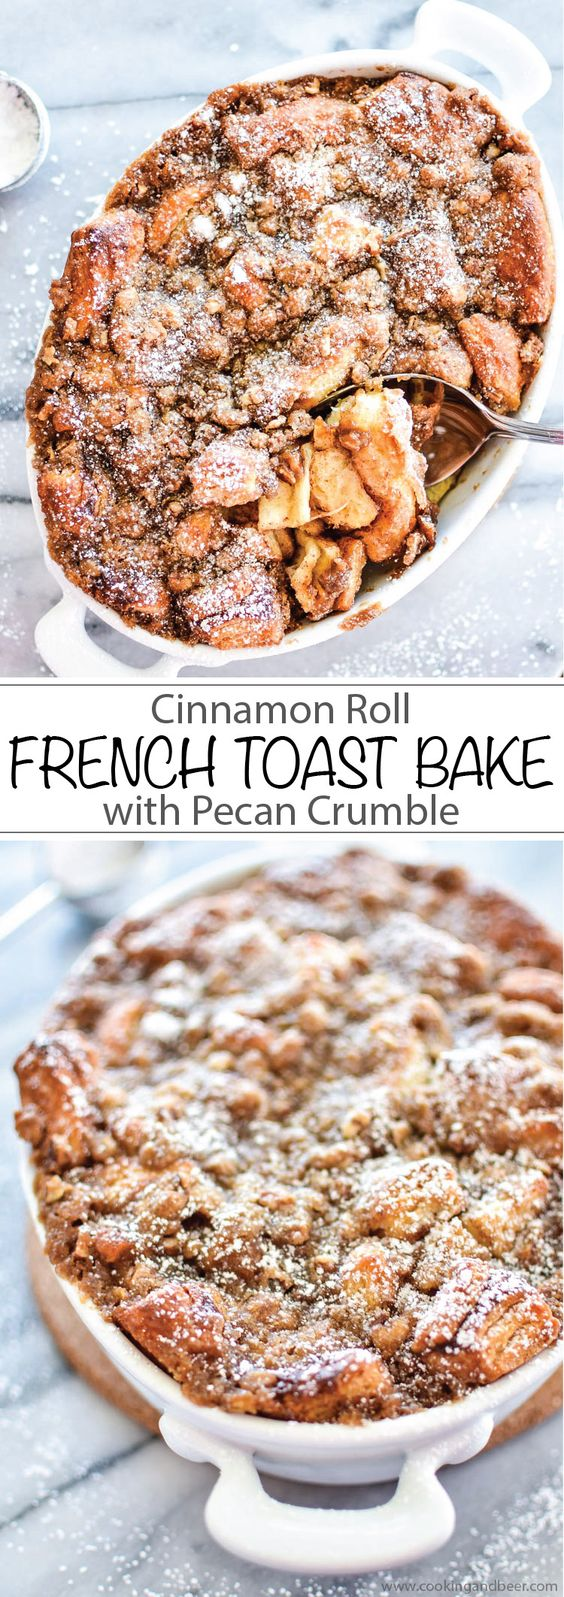 Cinnamon Roll French Toast Bake with Pecan Crumble Recipe | Cooking and Beer - The BEST Cinnamon Rolls Recipes - Perfect Treats for Breakfast, Brunch, Desserts, Christmas Morning, Special Occasions and Holidays #cinnamonrolls #cinnamon #cinnamontreats #cinnamonrollsrecipes #cinnamondesserts #breakfastrolls #sweetrolls